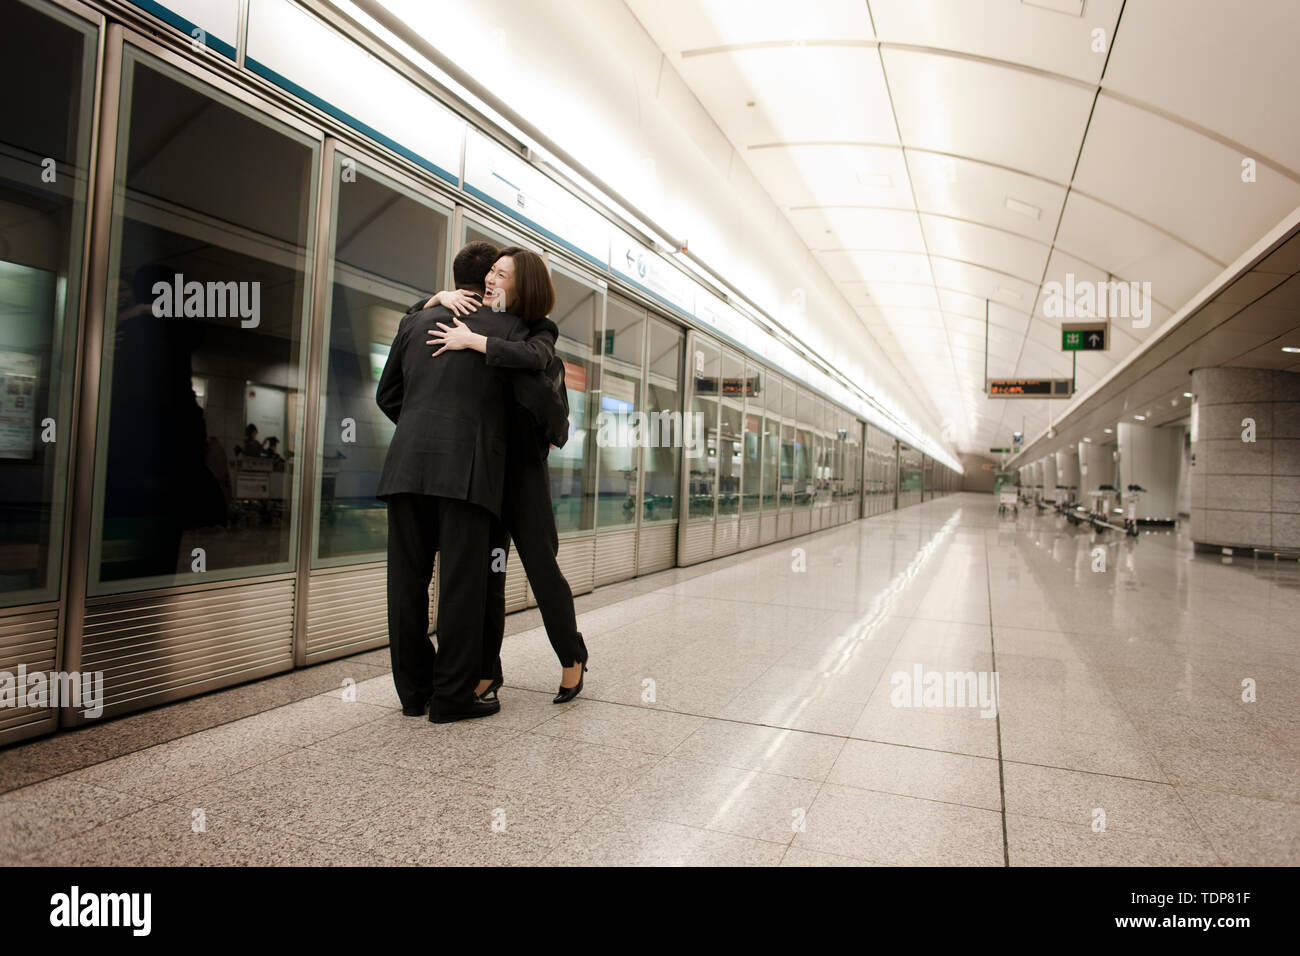 Couple greeting each other with a hug on the subway. - Stock Image